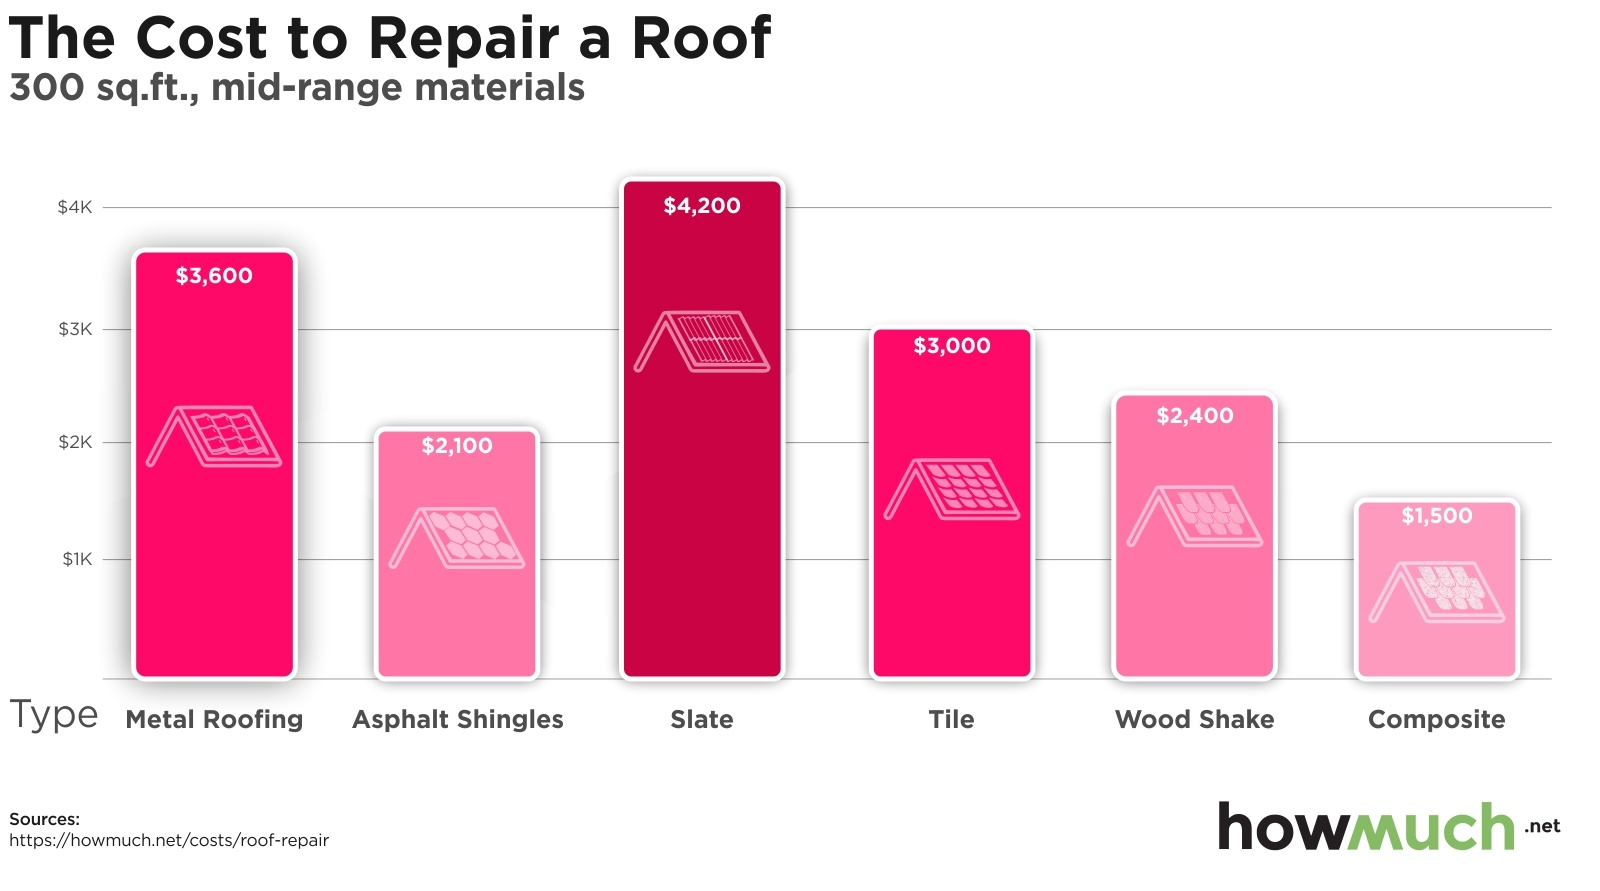 The Cost to Repair a Roof